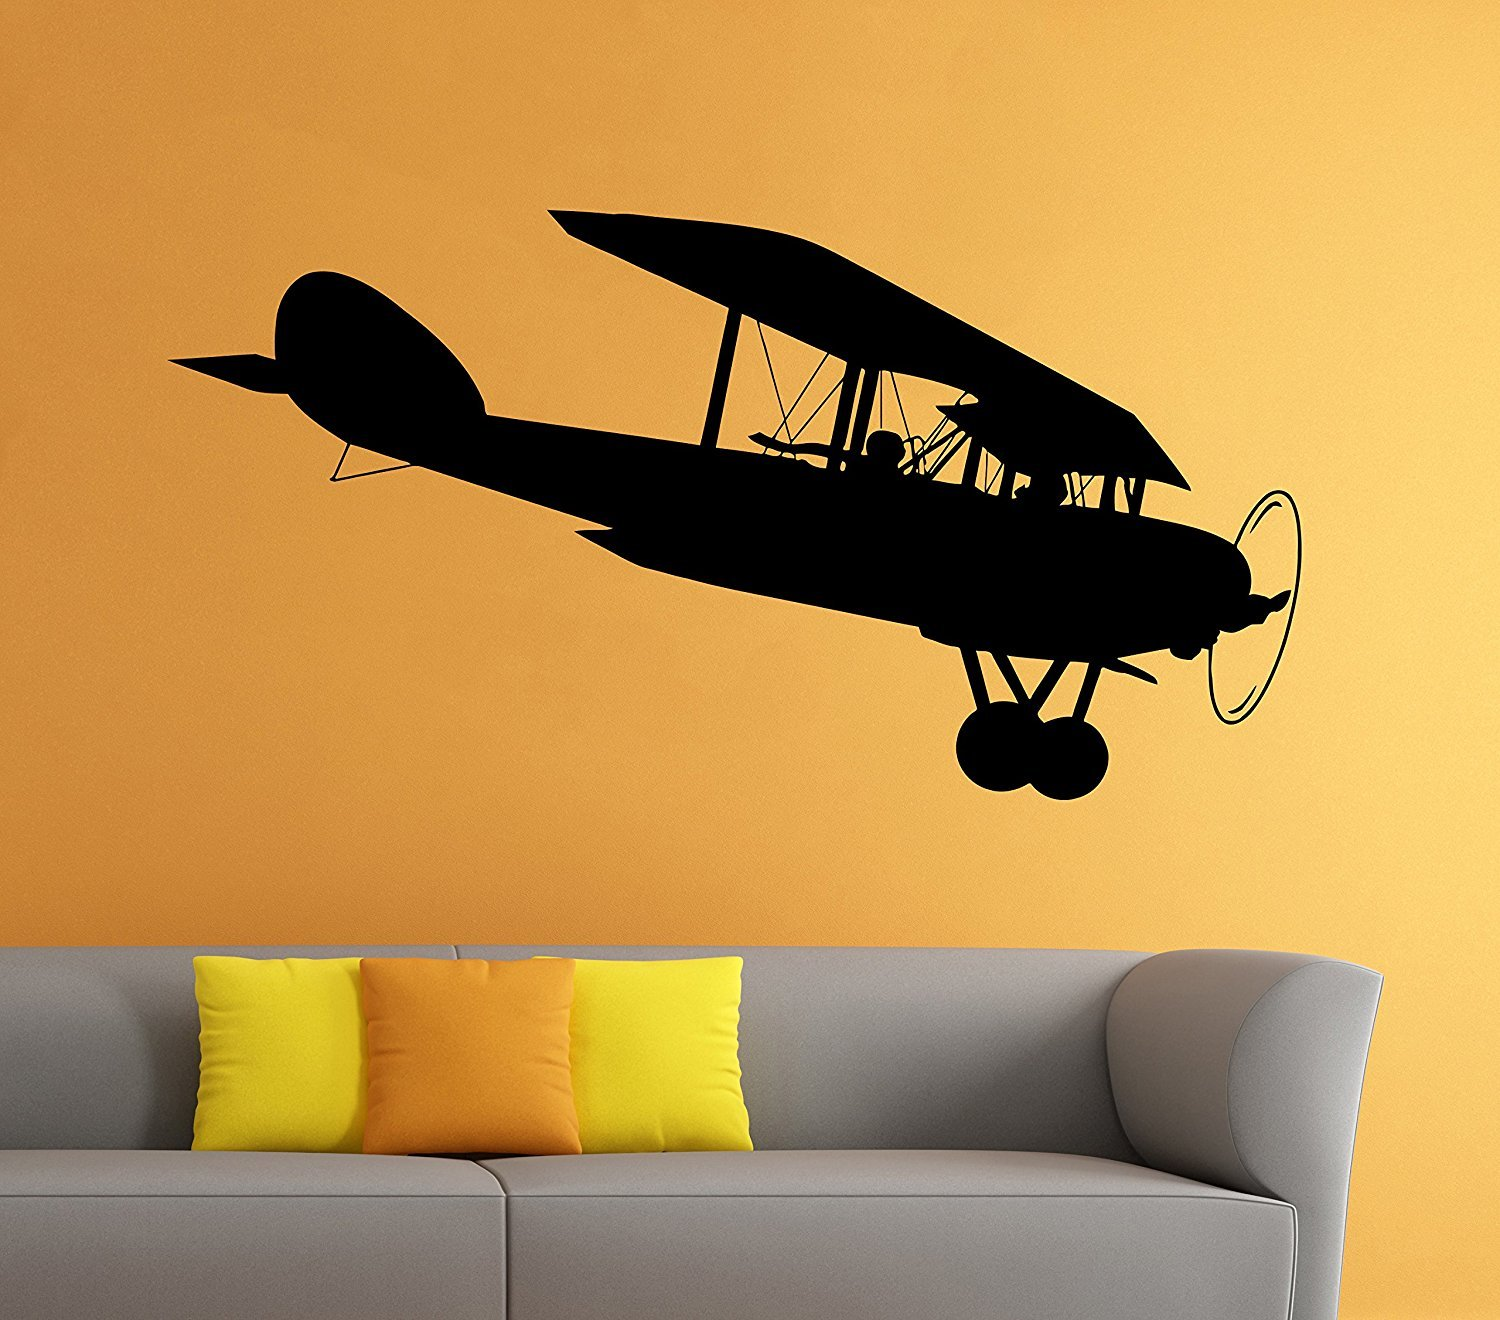 Awesome Aviation Wall Art Composition - Art & Wall Decor - hecatalog ...